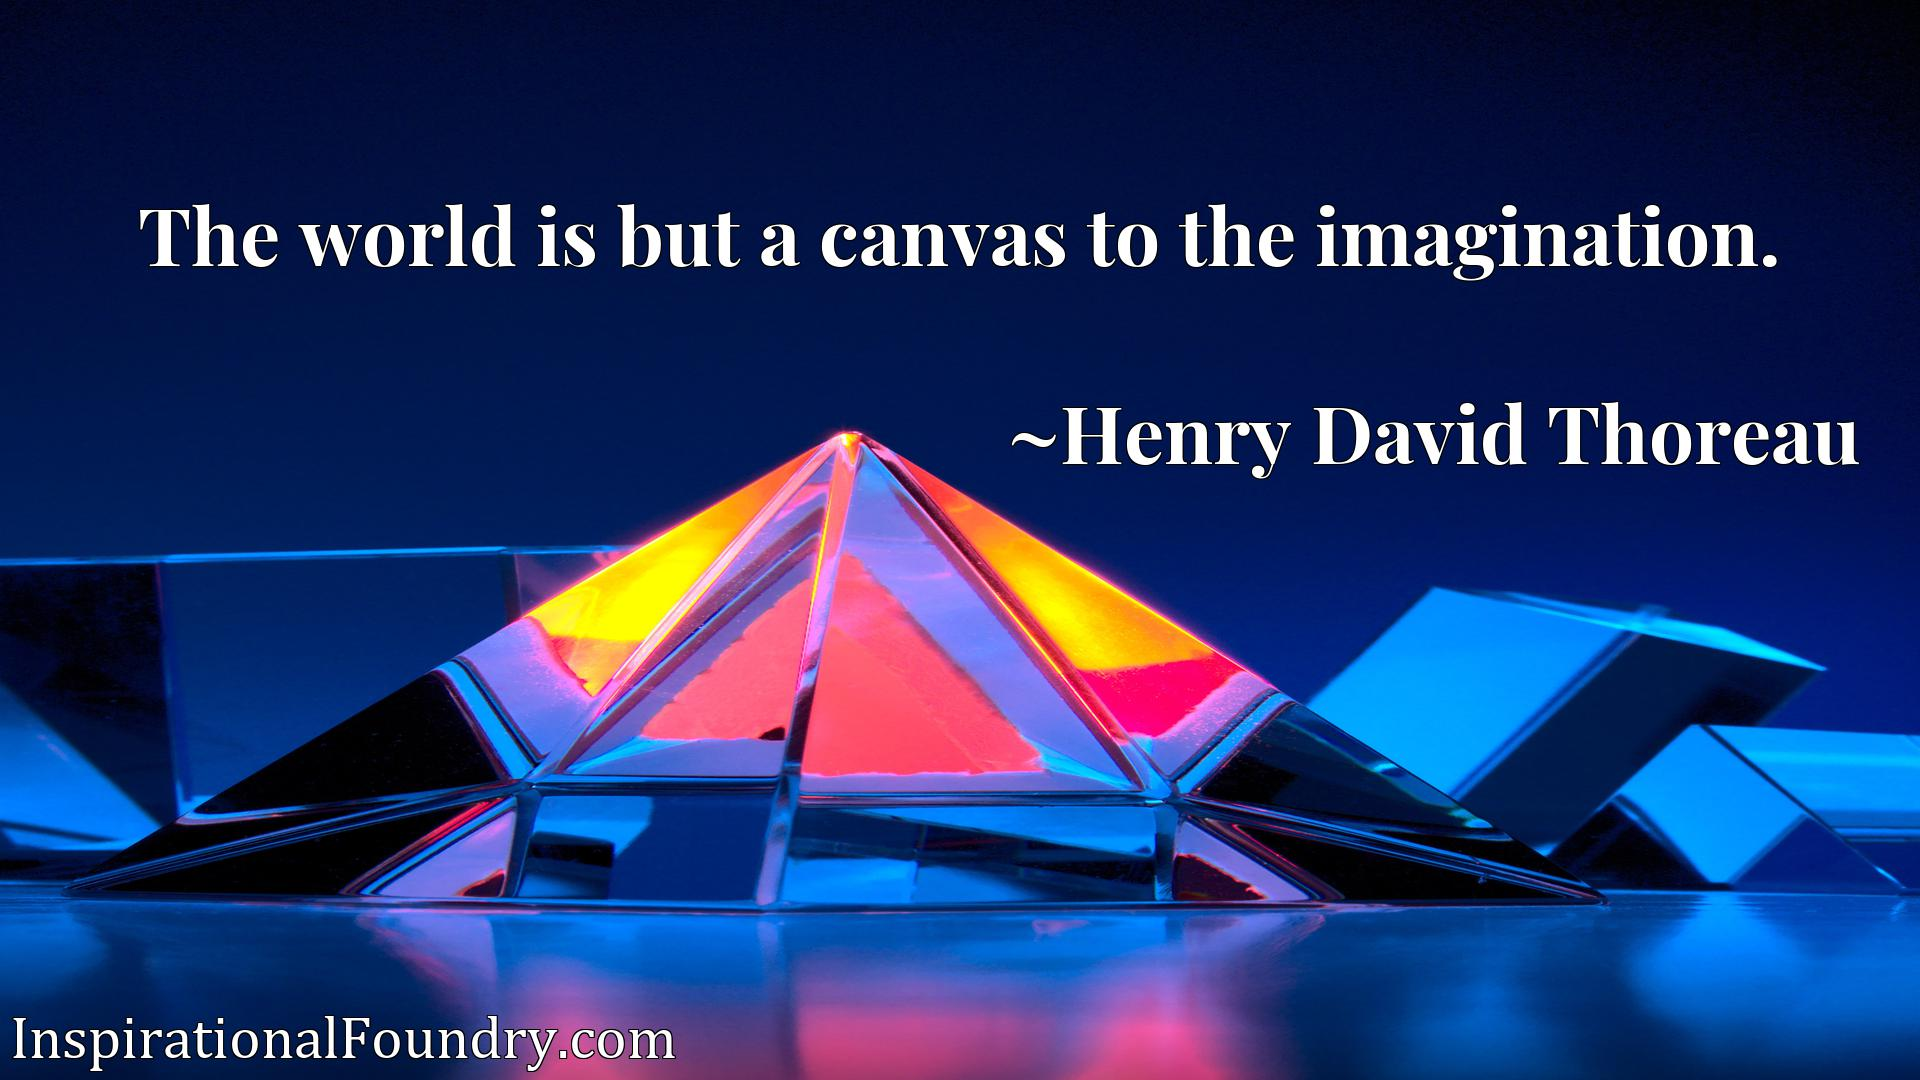 The world is but a canvas to the imagination.